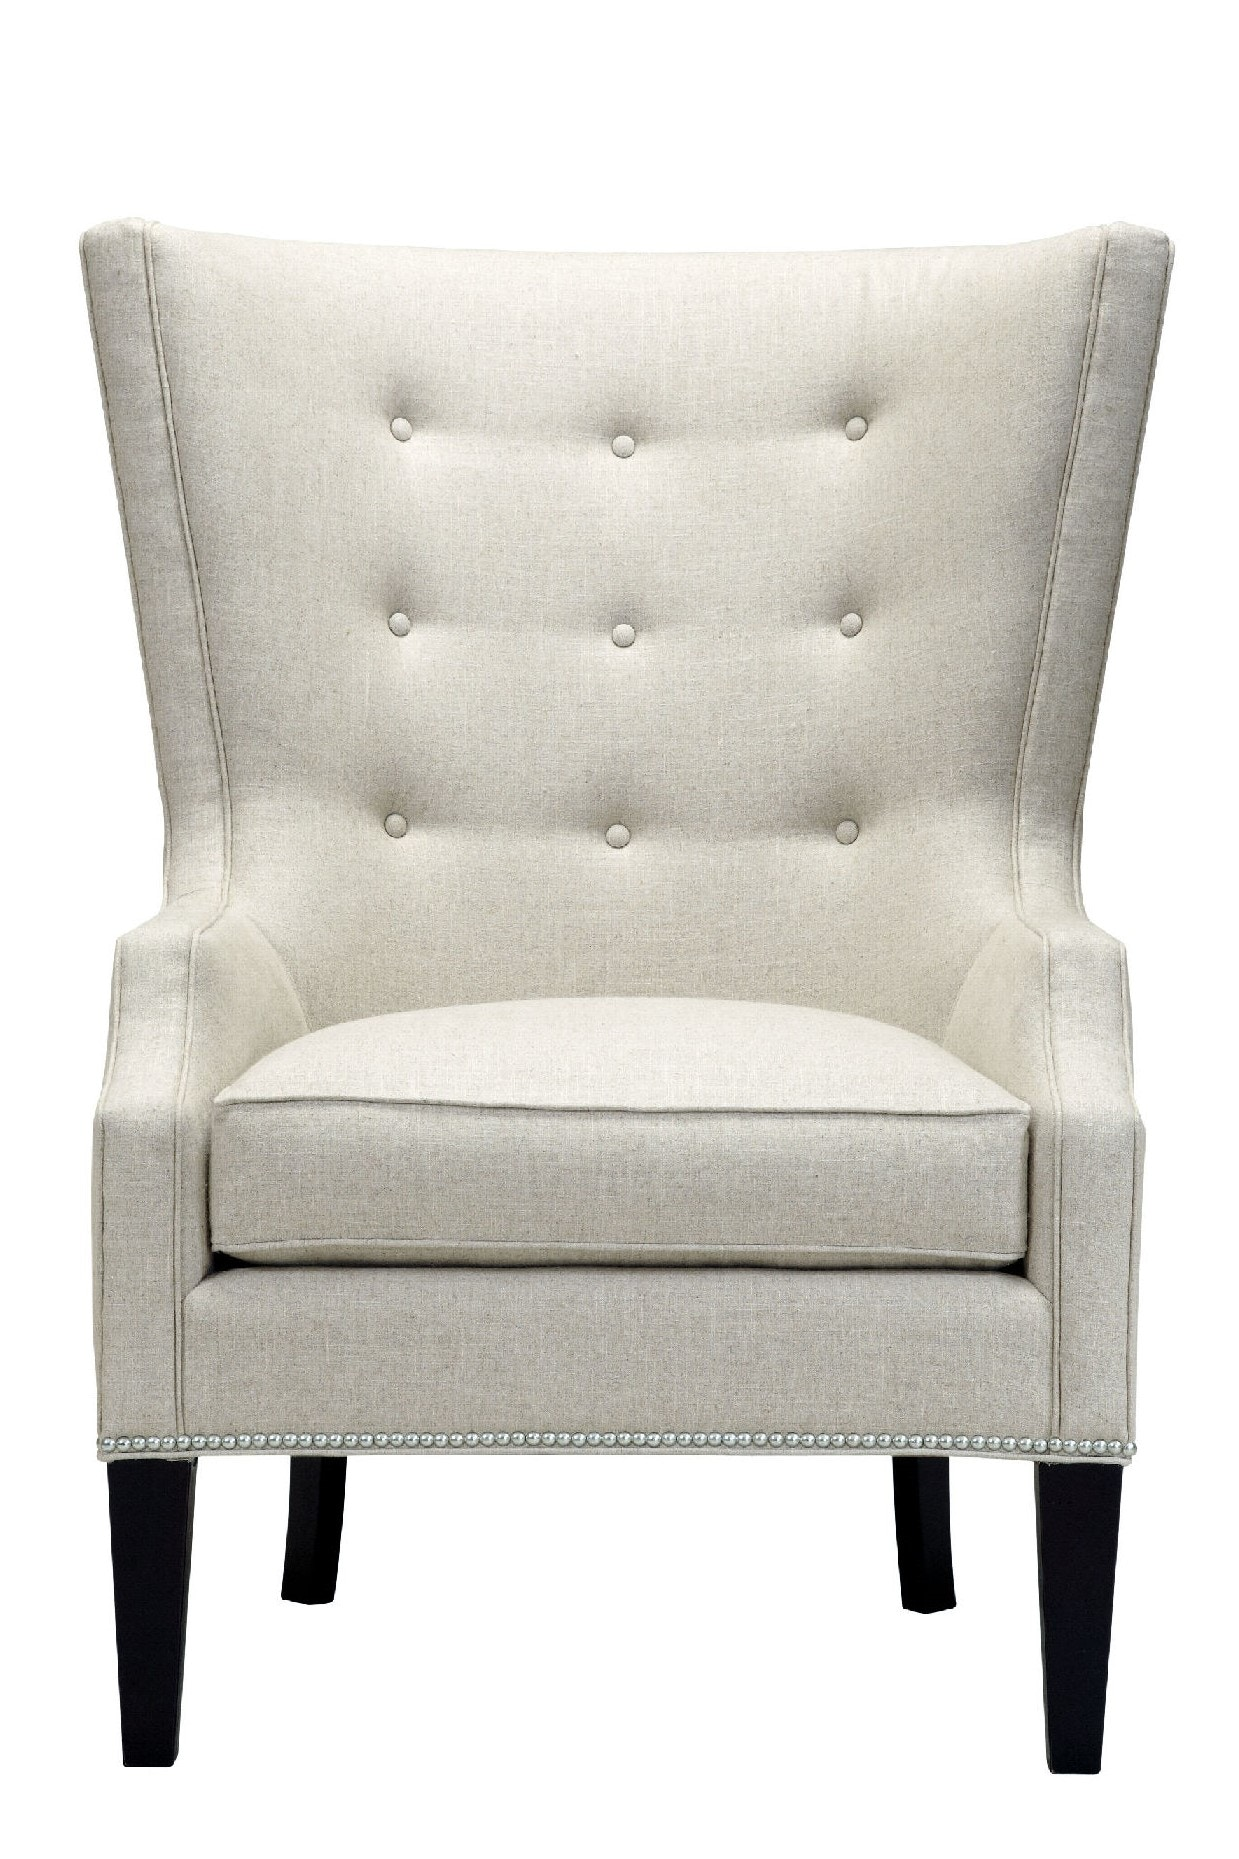 Wes 1 Hunt Chair WES46143 From Walter E. Smithe Furniture + Design